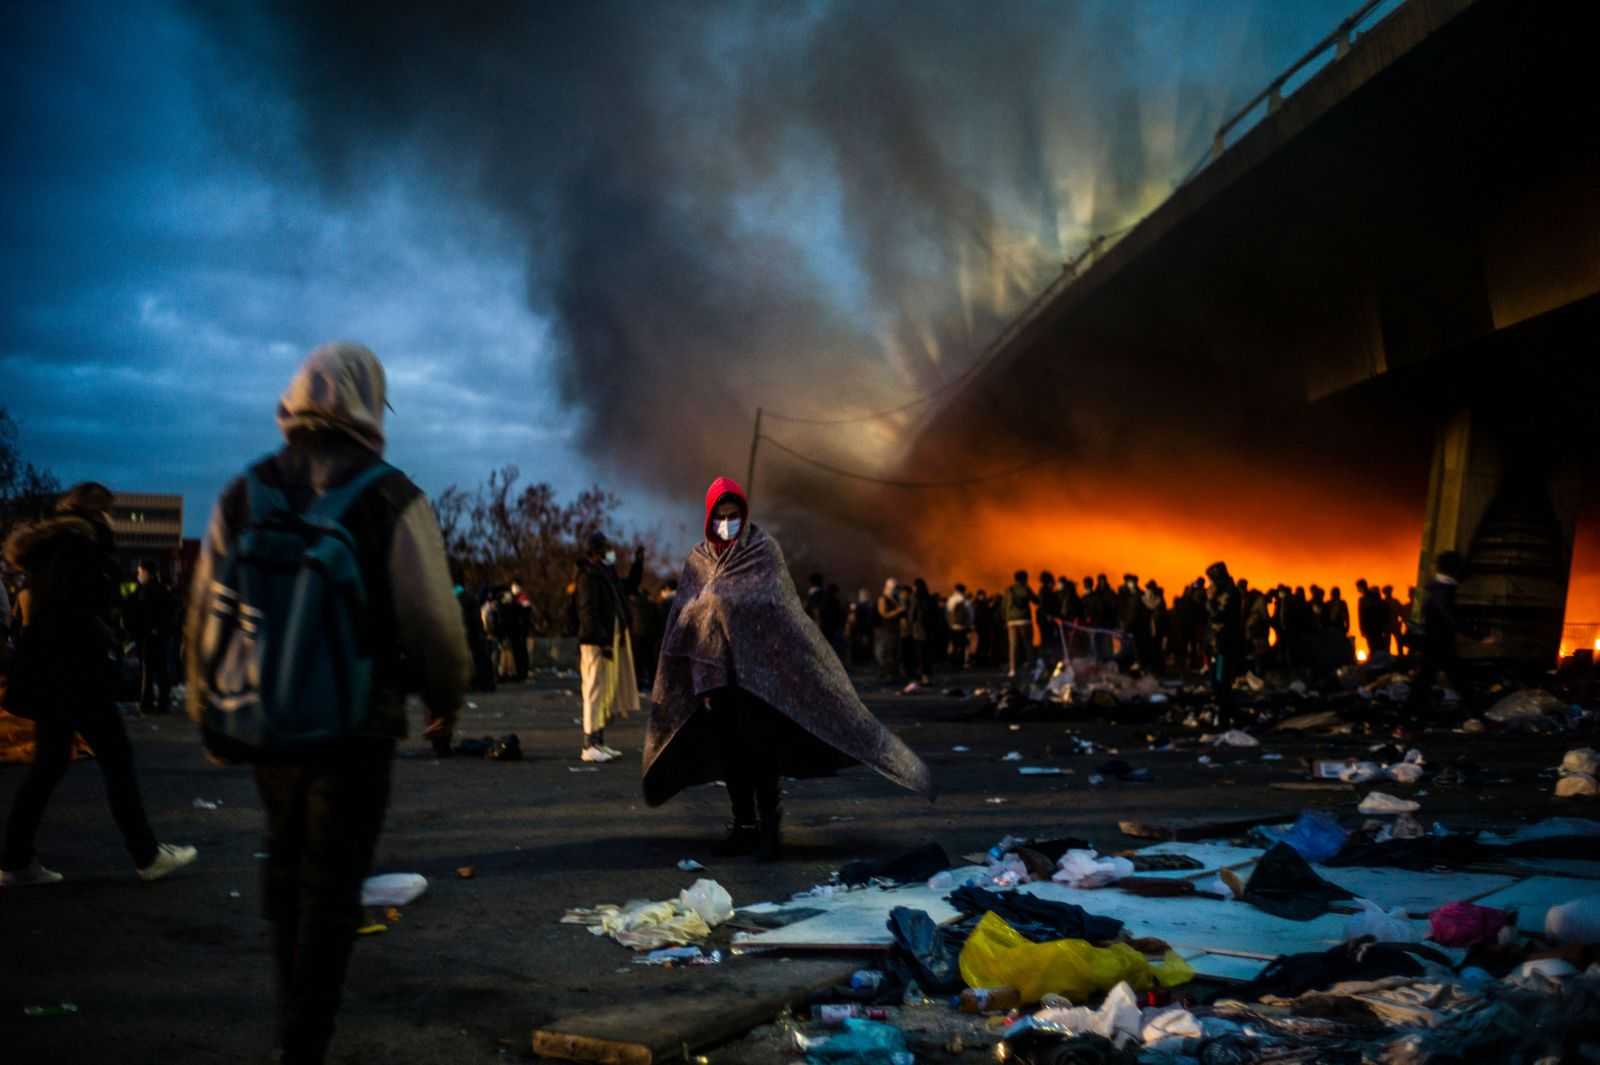 Migrants cleared from camps in Saint Denis., France - 17 Nov 2020